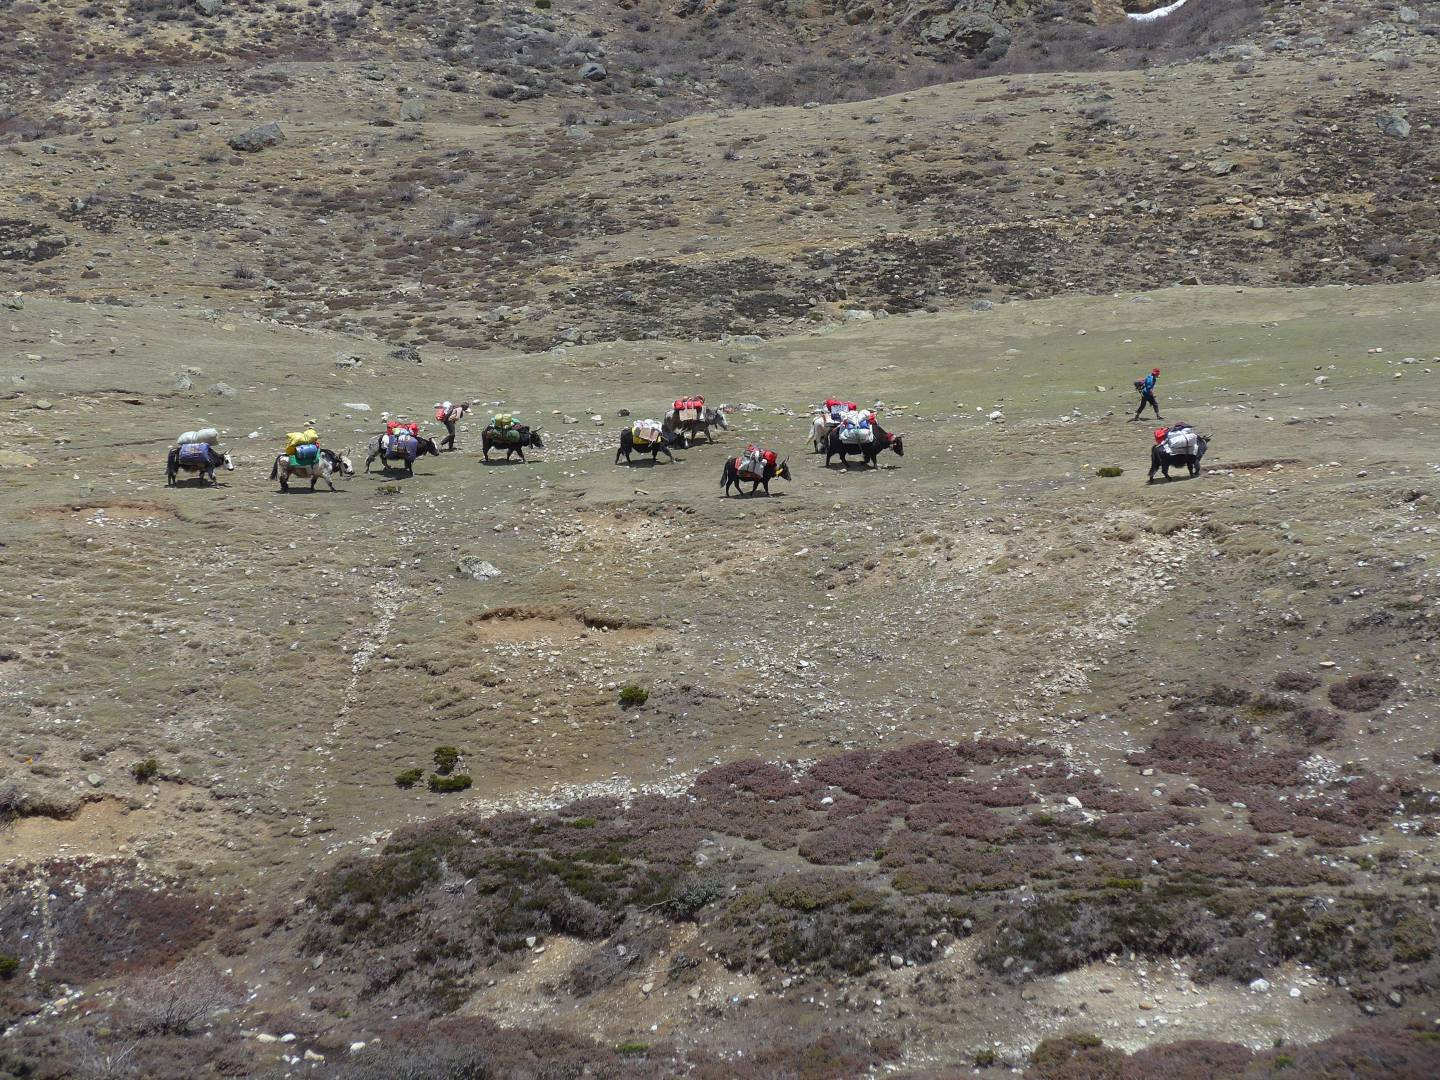 Our yak train plods across the valley